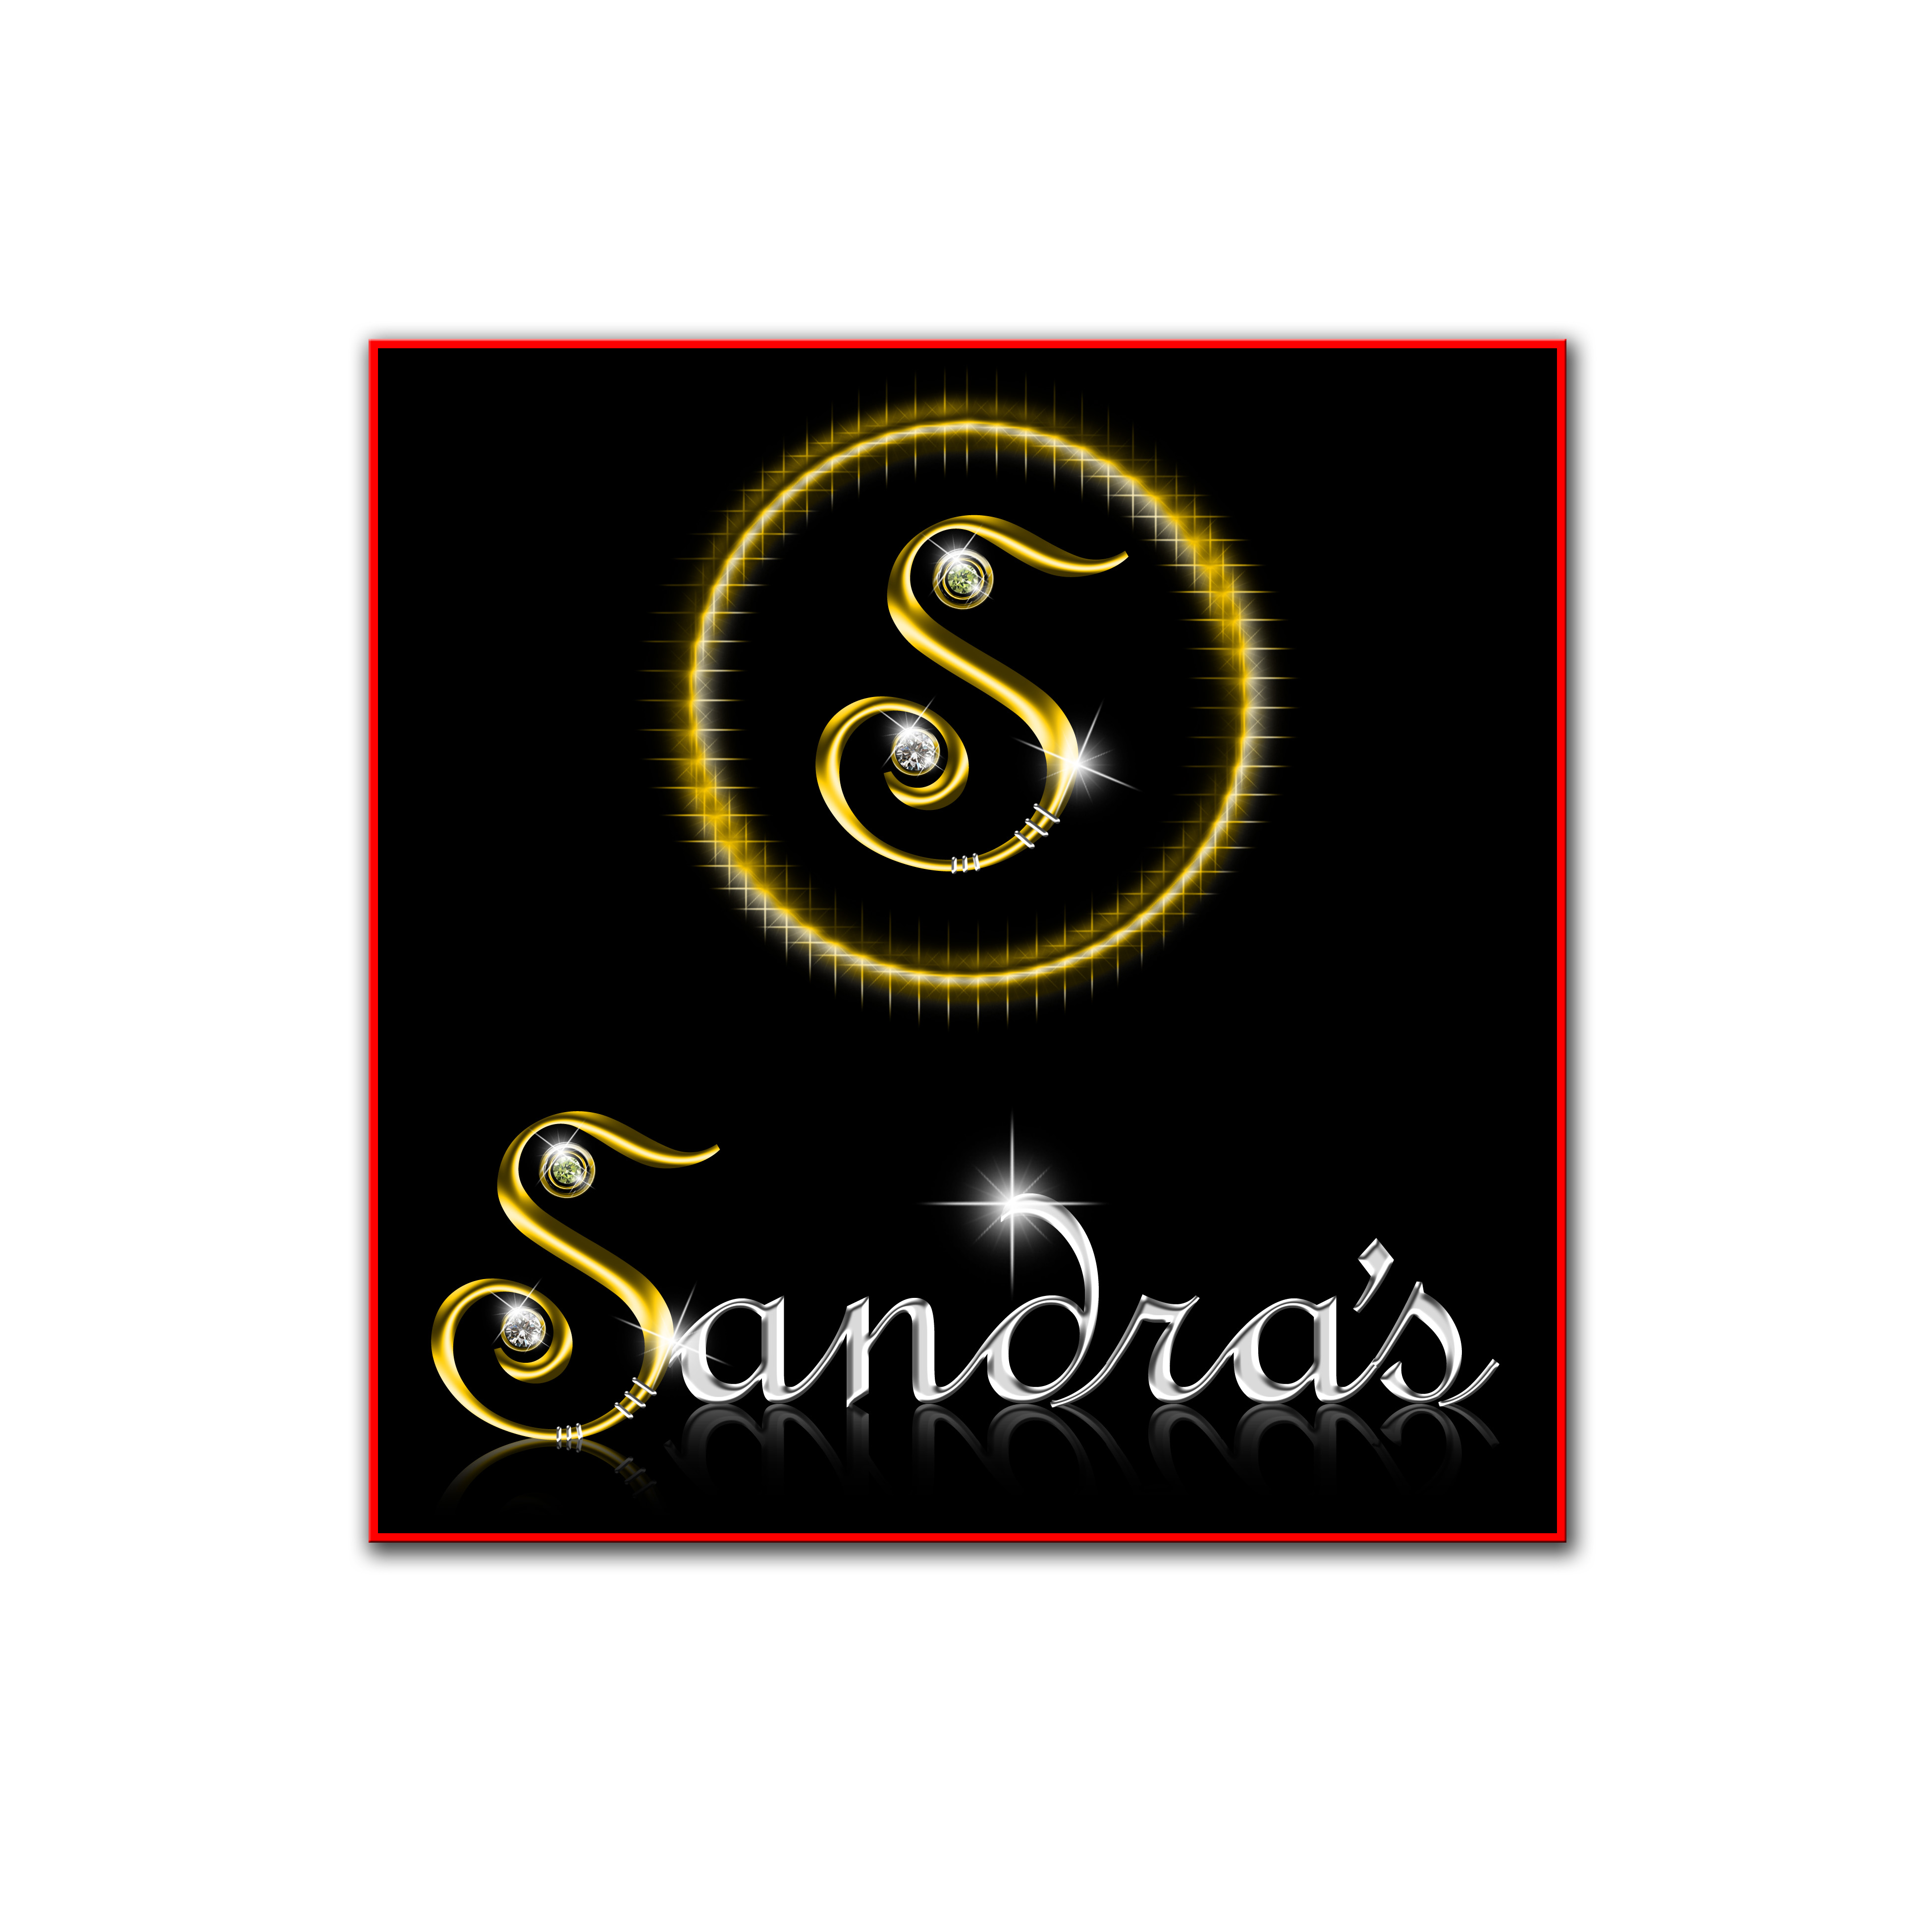 Logo Design by Cesar III Sotto - Entry No. 119 in the Logo Design Contest Imaginative Logo Design for Sandra's.